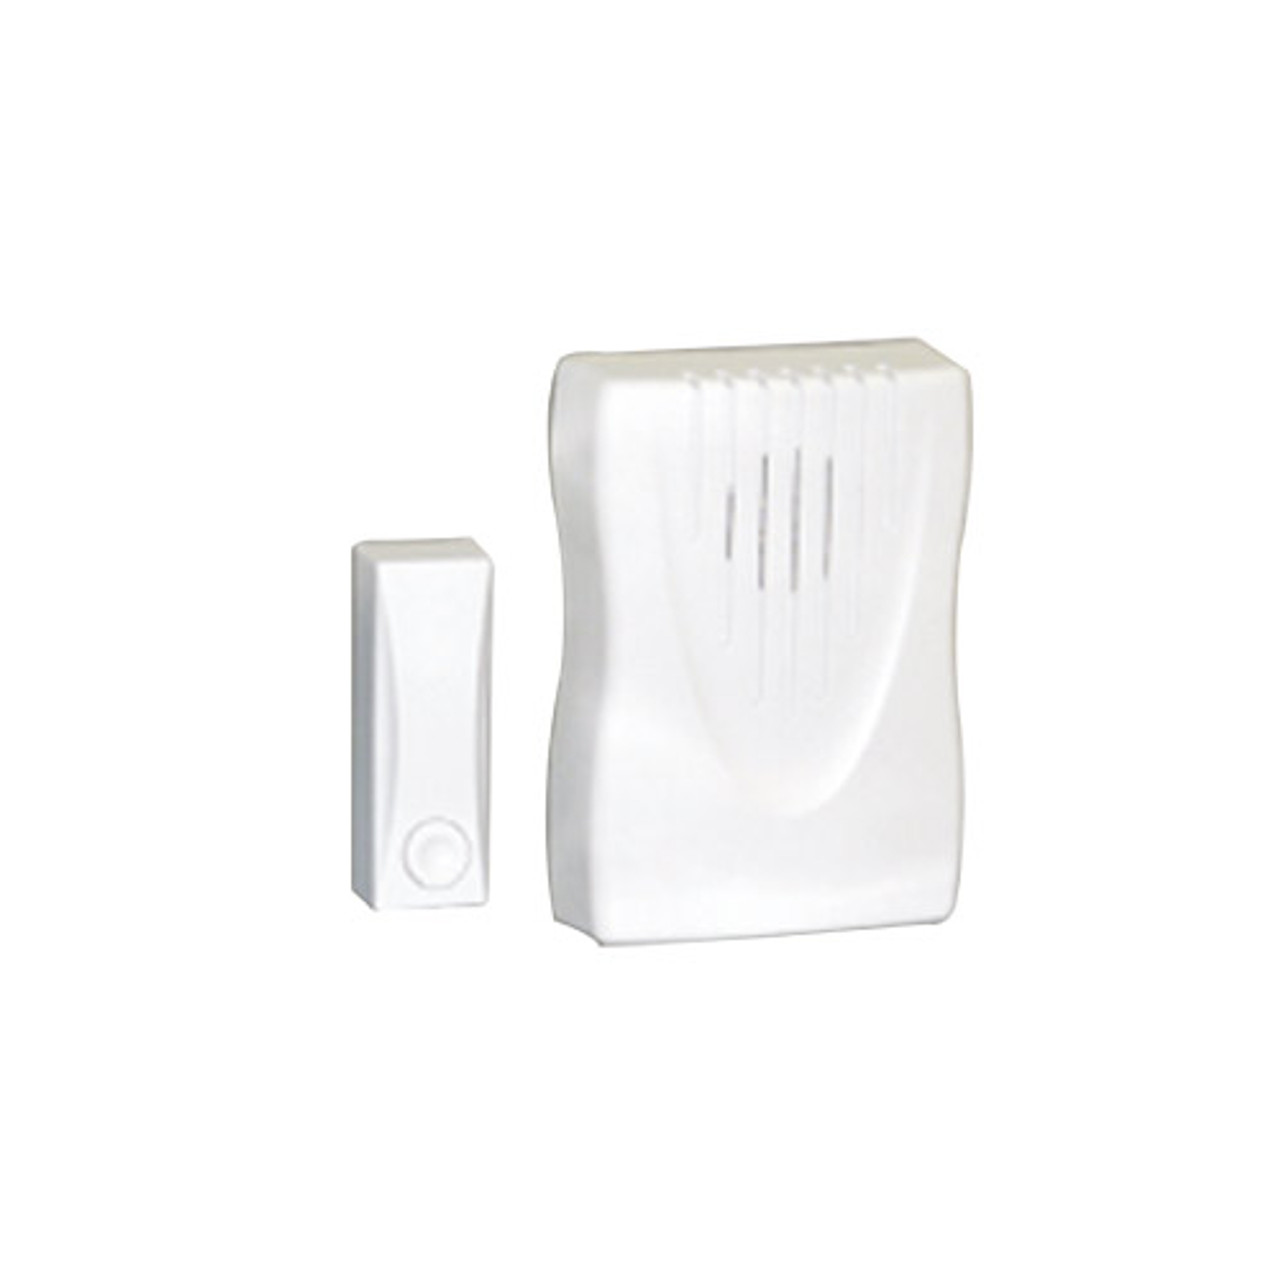 Trine-232 Trine Battery Operated Chime